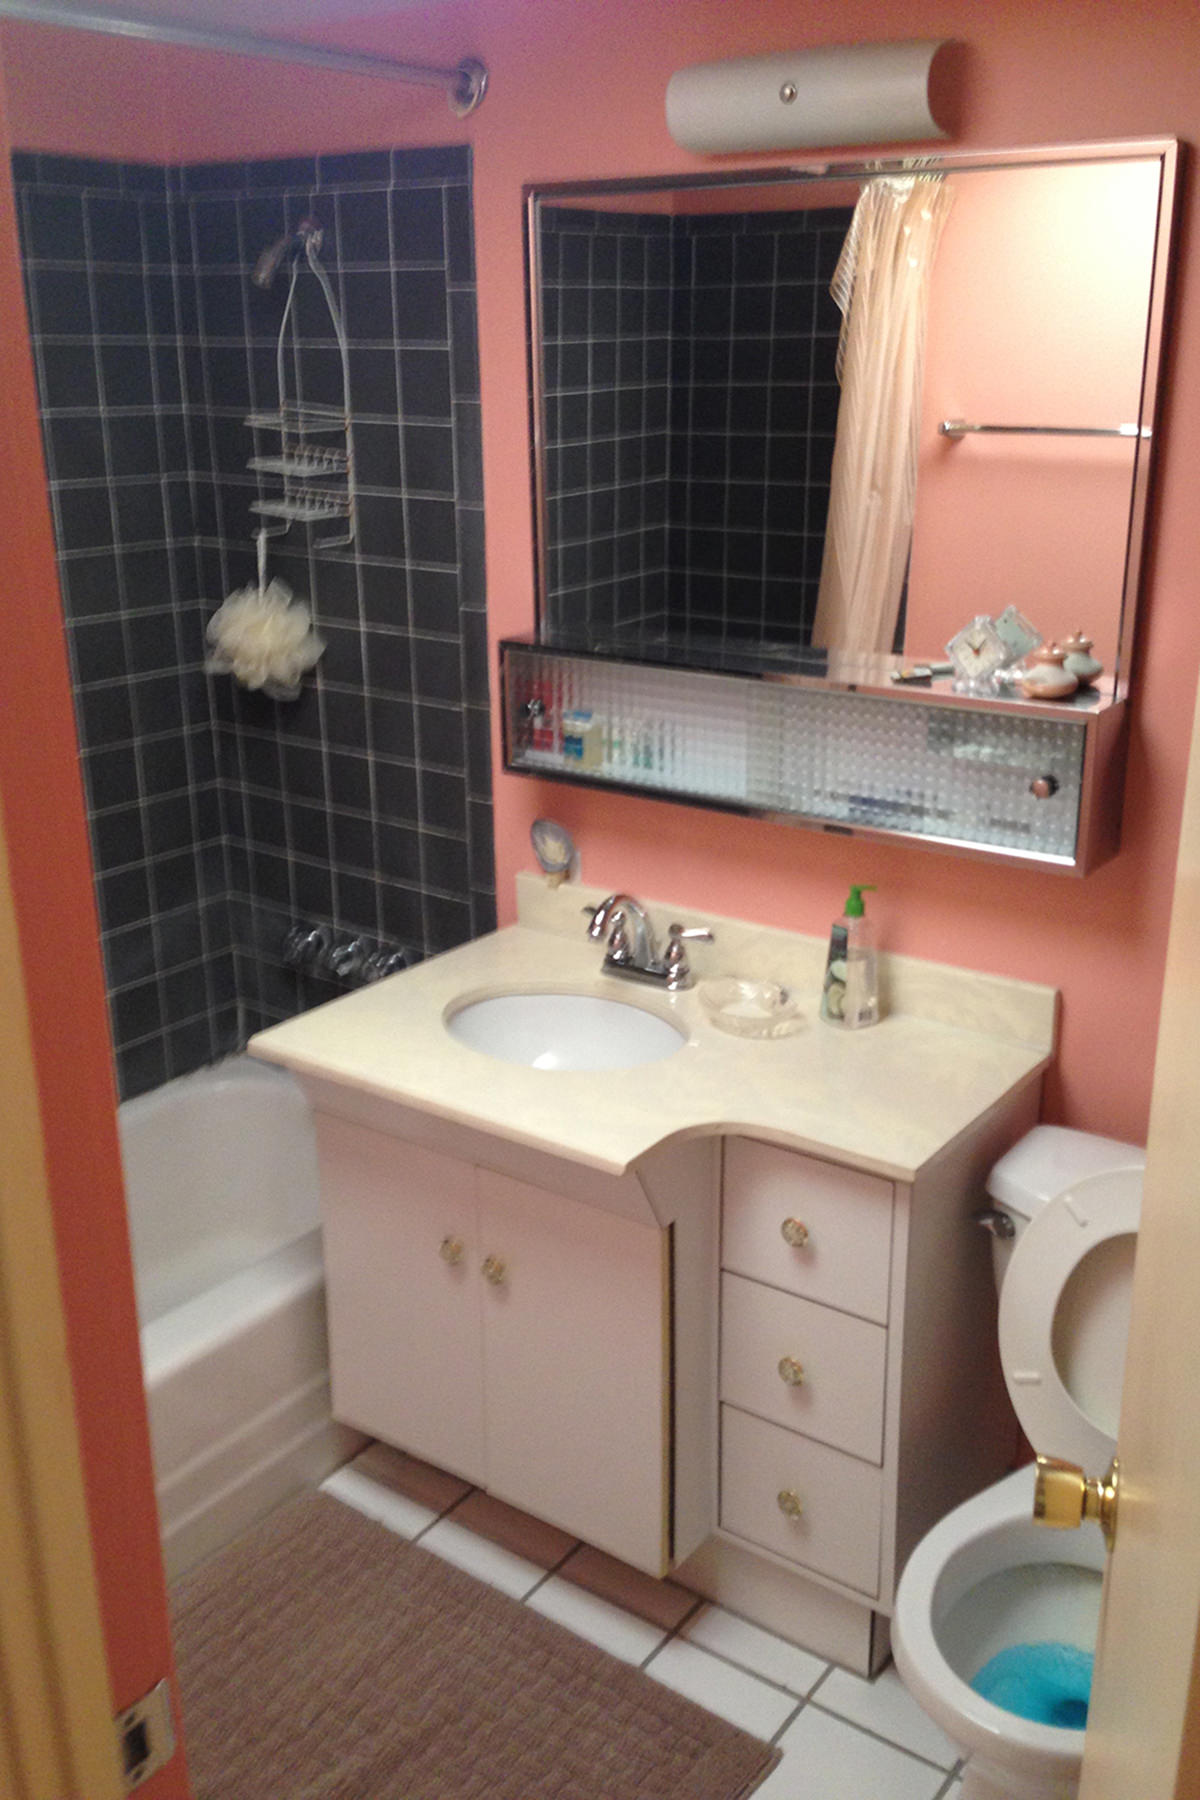 20.GUEST BATHROOM